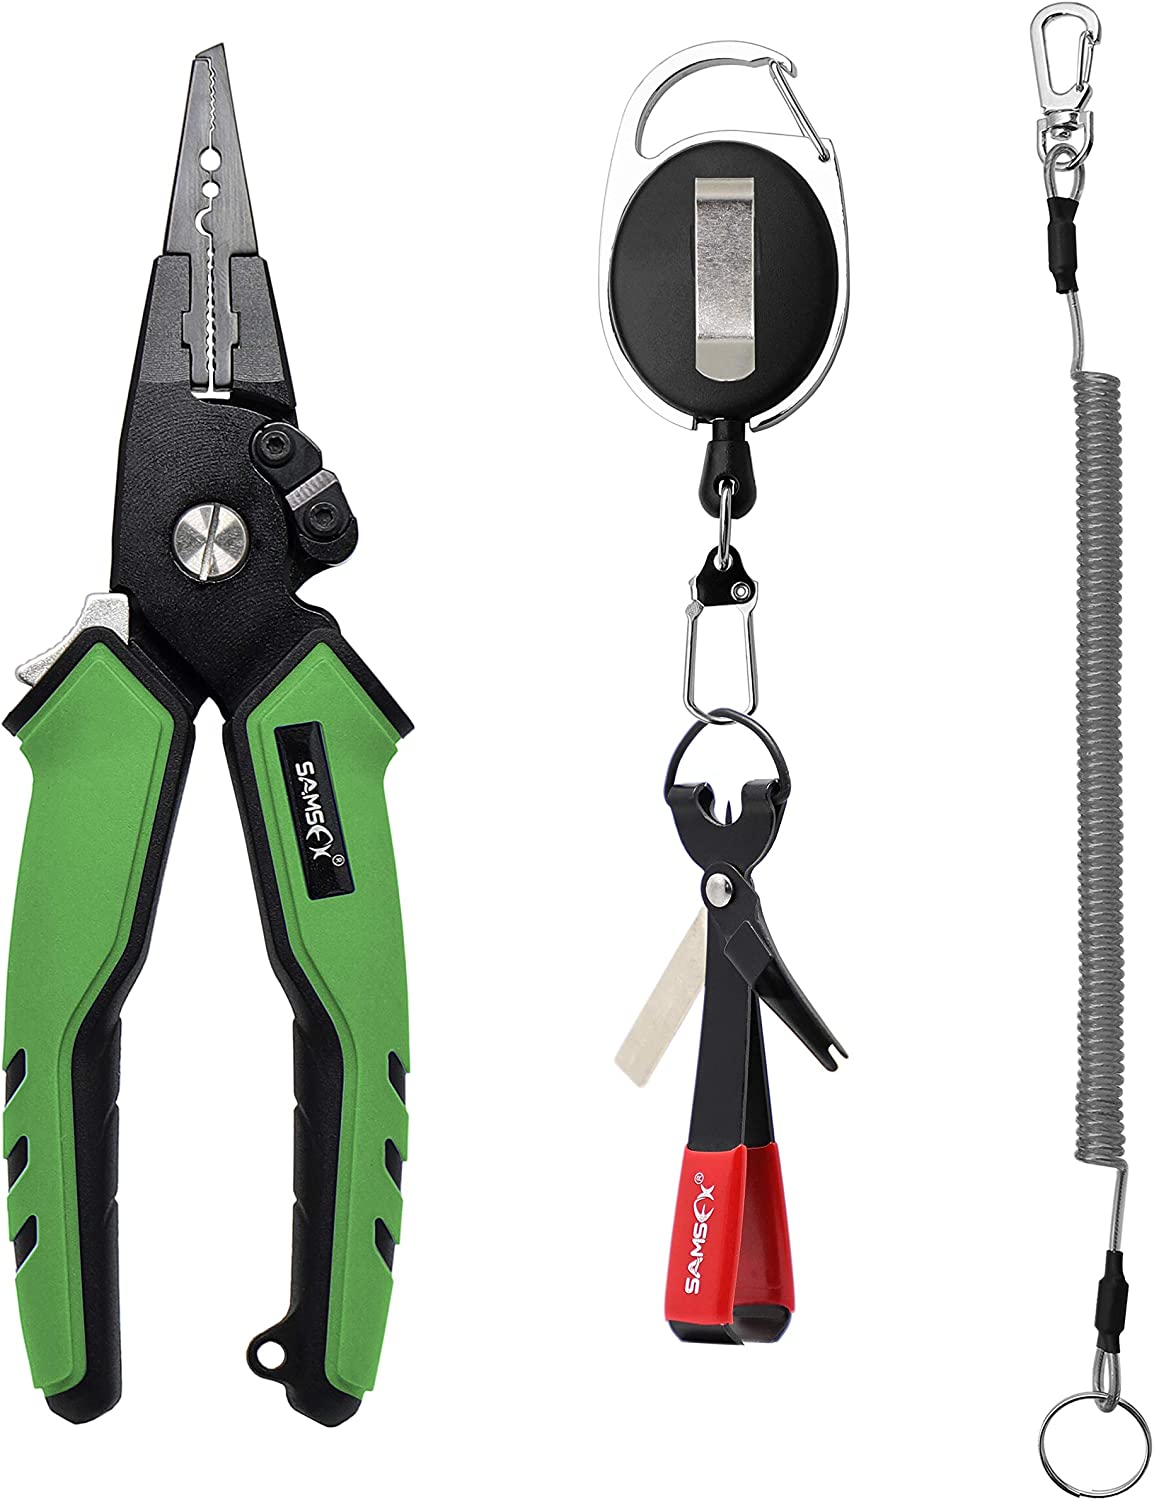 SAMSFX 7 Aluminum Fishing Pliers Saltwater with Coiled Lanyard and Sheath, Quick Knot Tying Tool